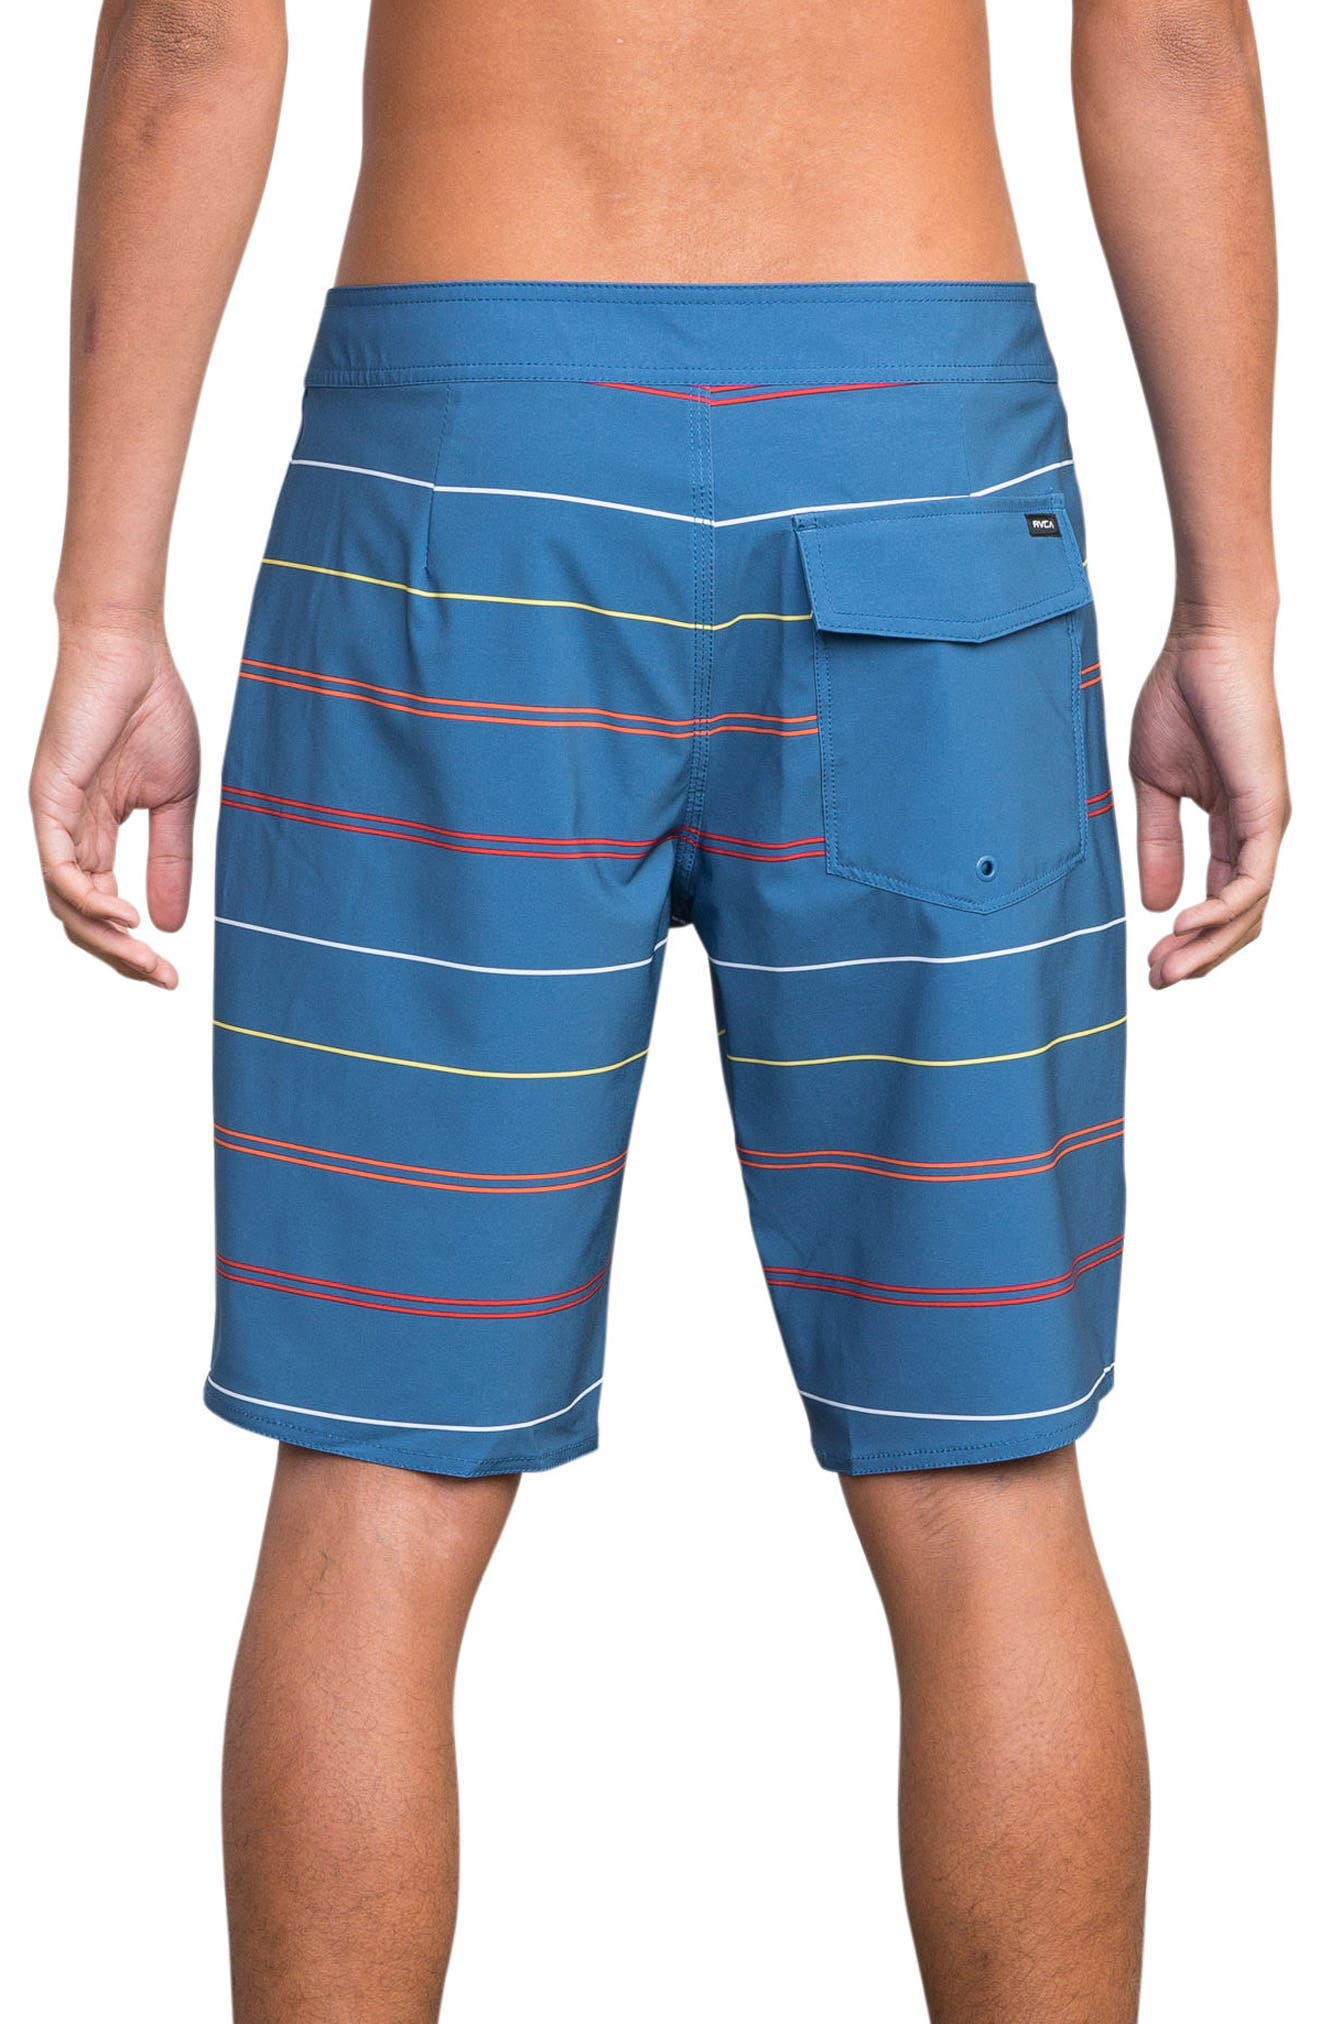 Middle Swim Trunks,                             Alternate thumbnail 2, color,                             COBALT